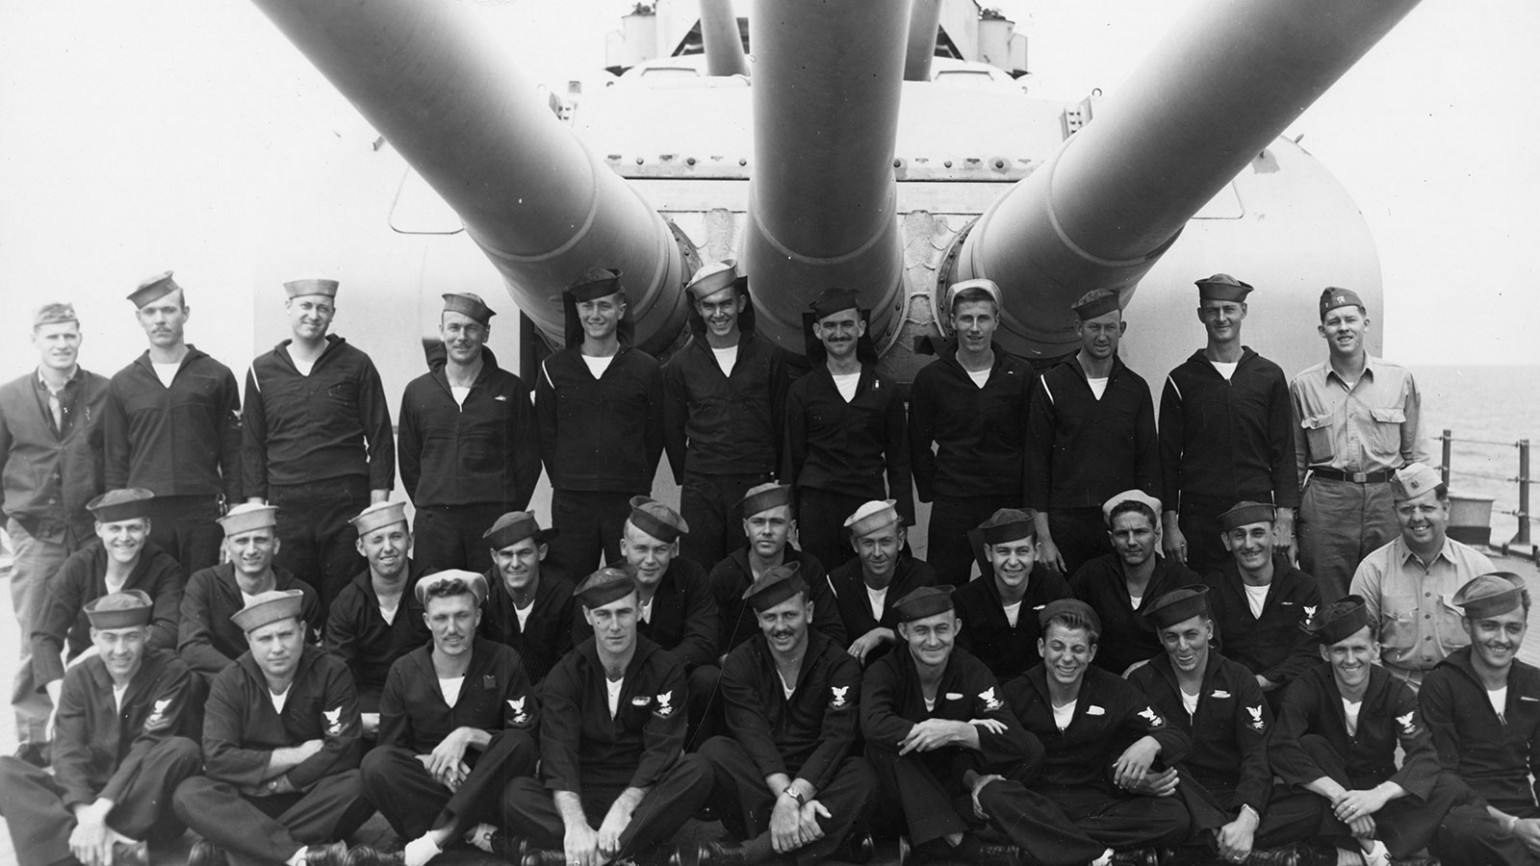 Navy men posing for a picture atop the USS Indianapolis. Photo courtesy of Alfred J. Sedivi Collection - USNI.